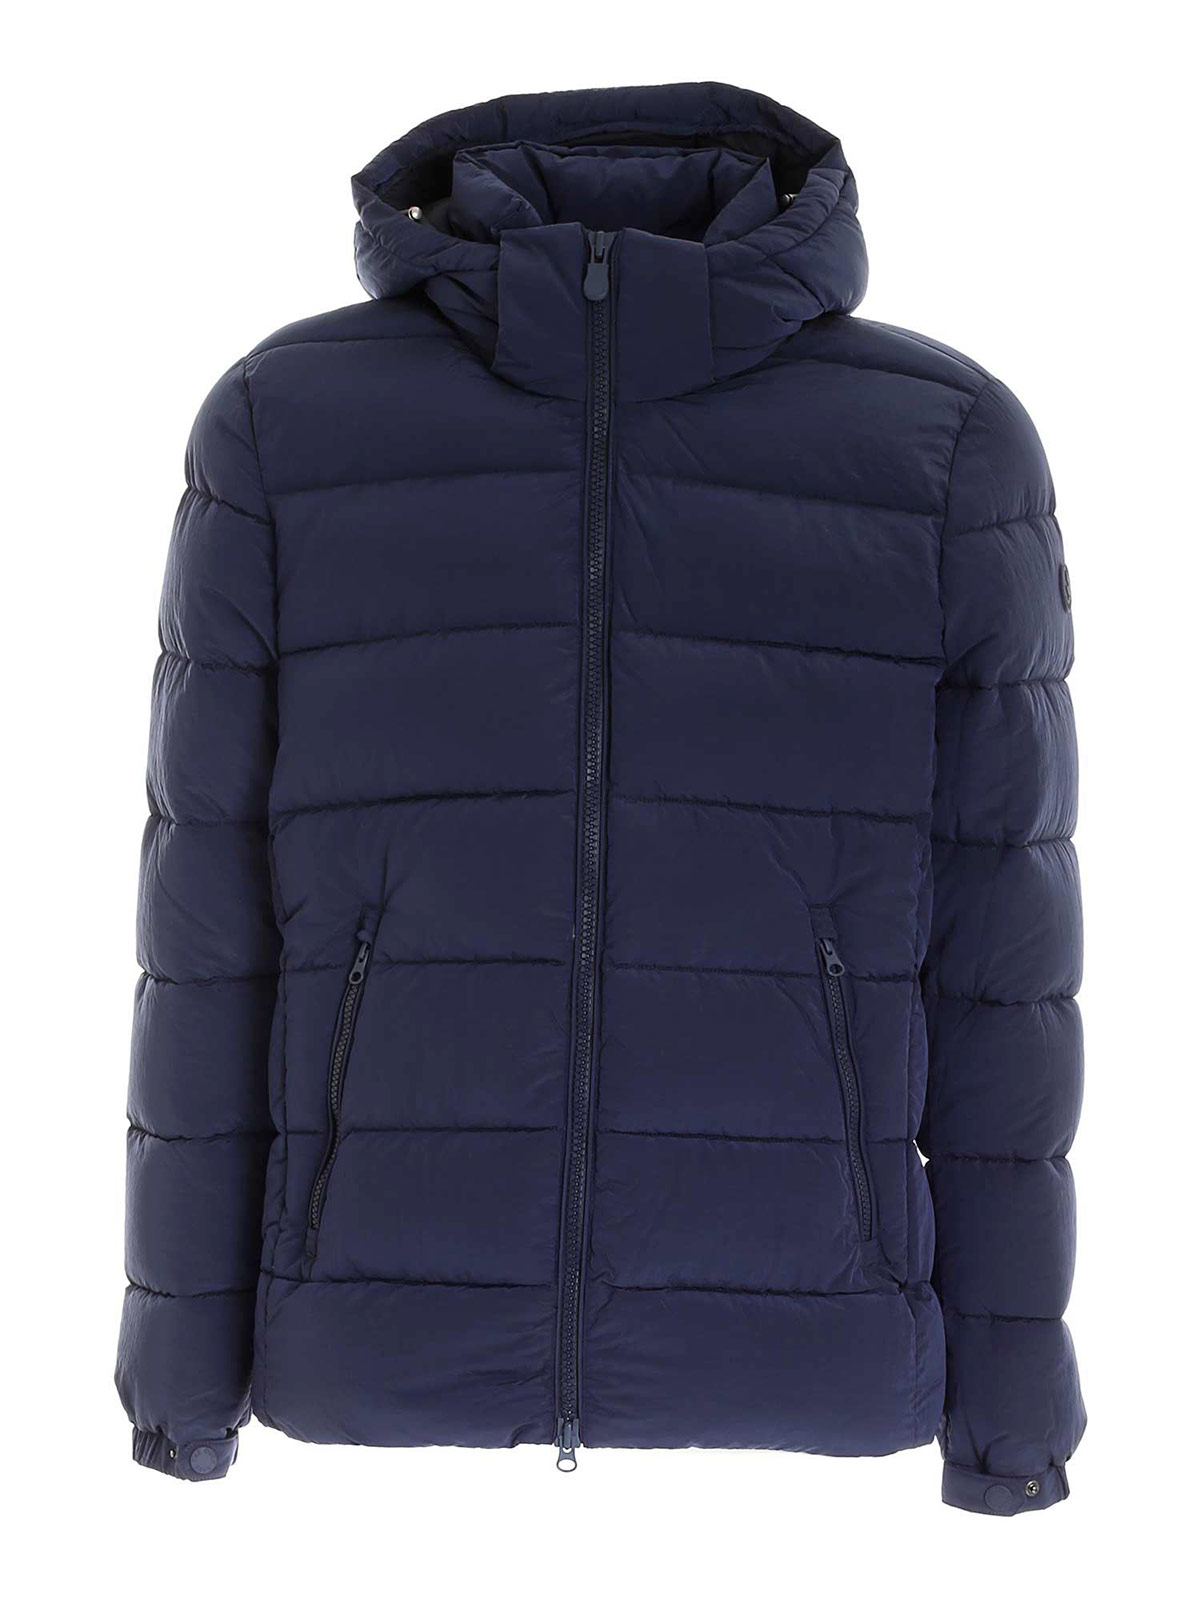 Picture of SAVE THE DUCK | Men's Matte Padded Jacket D3556M